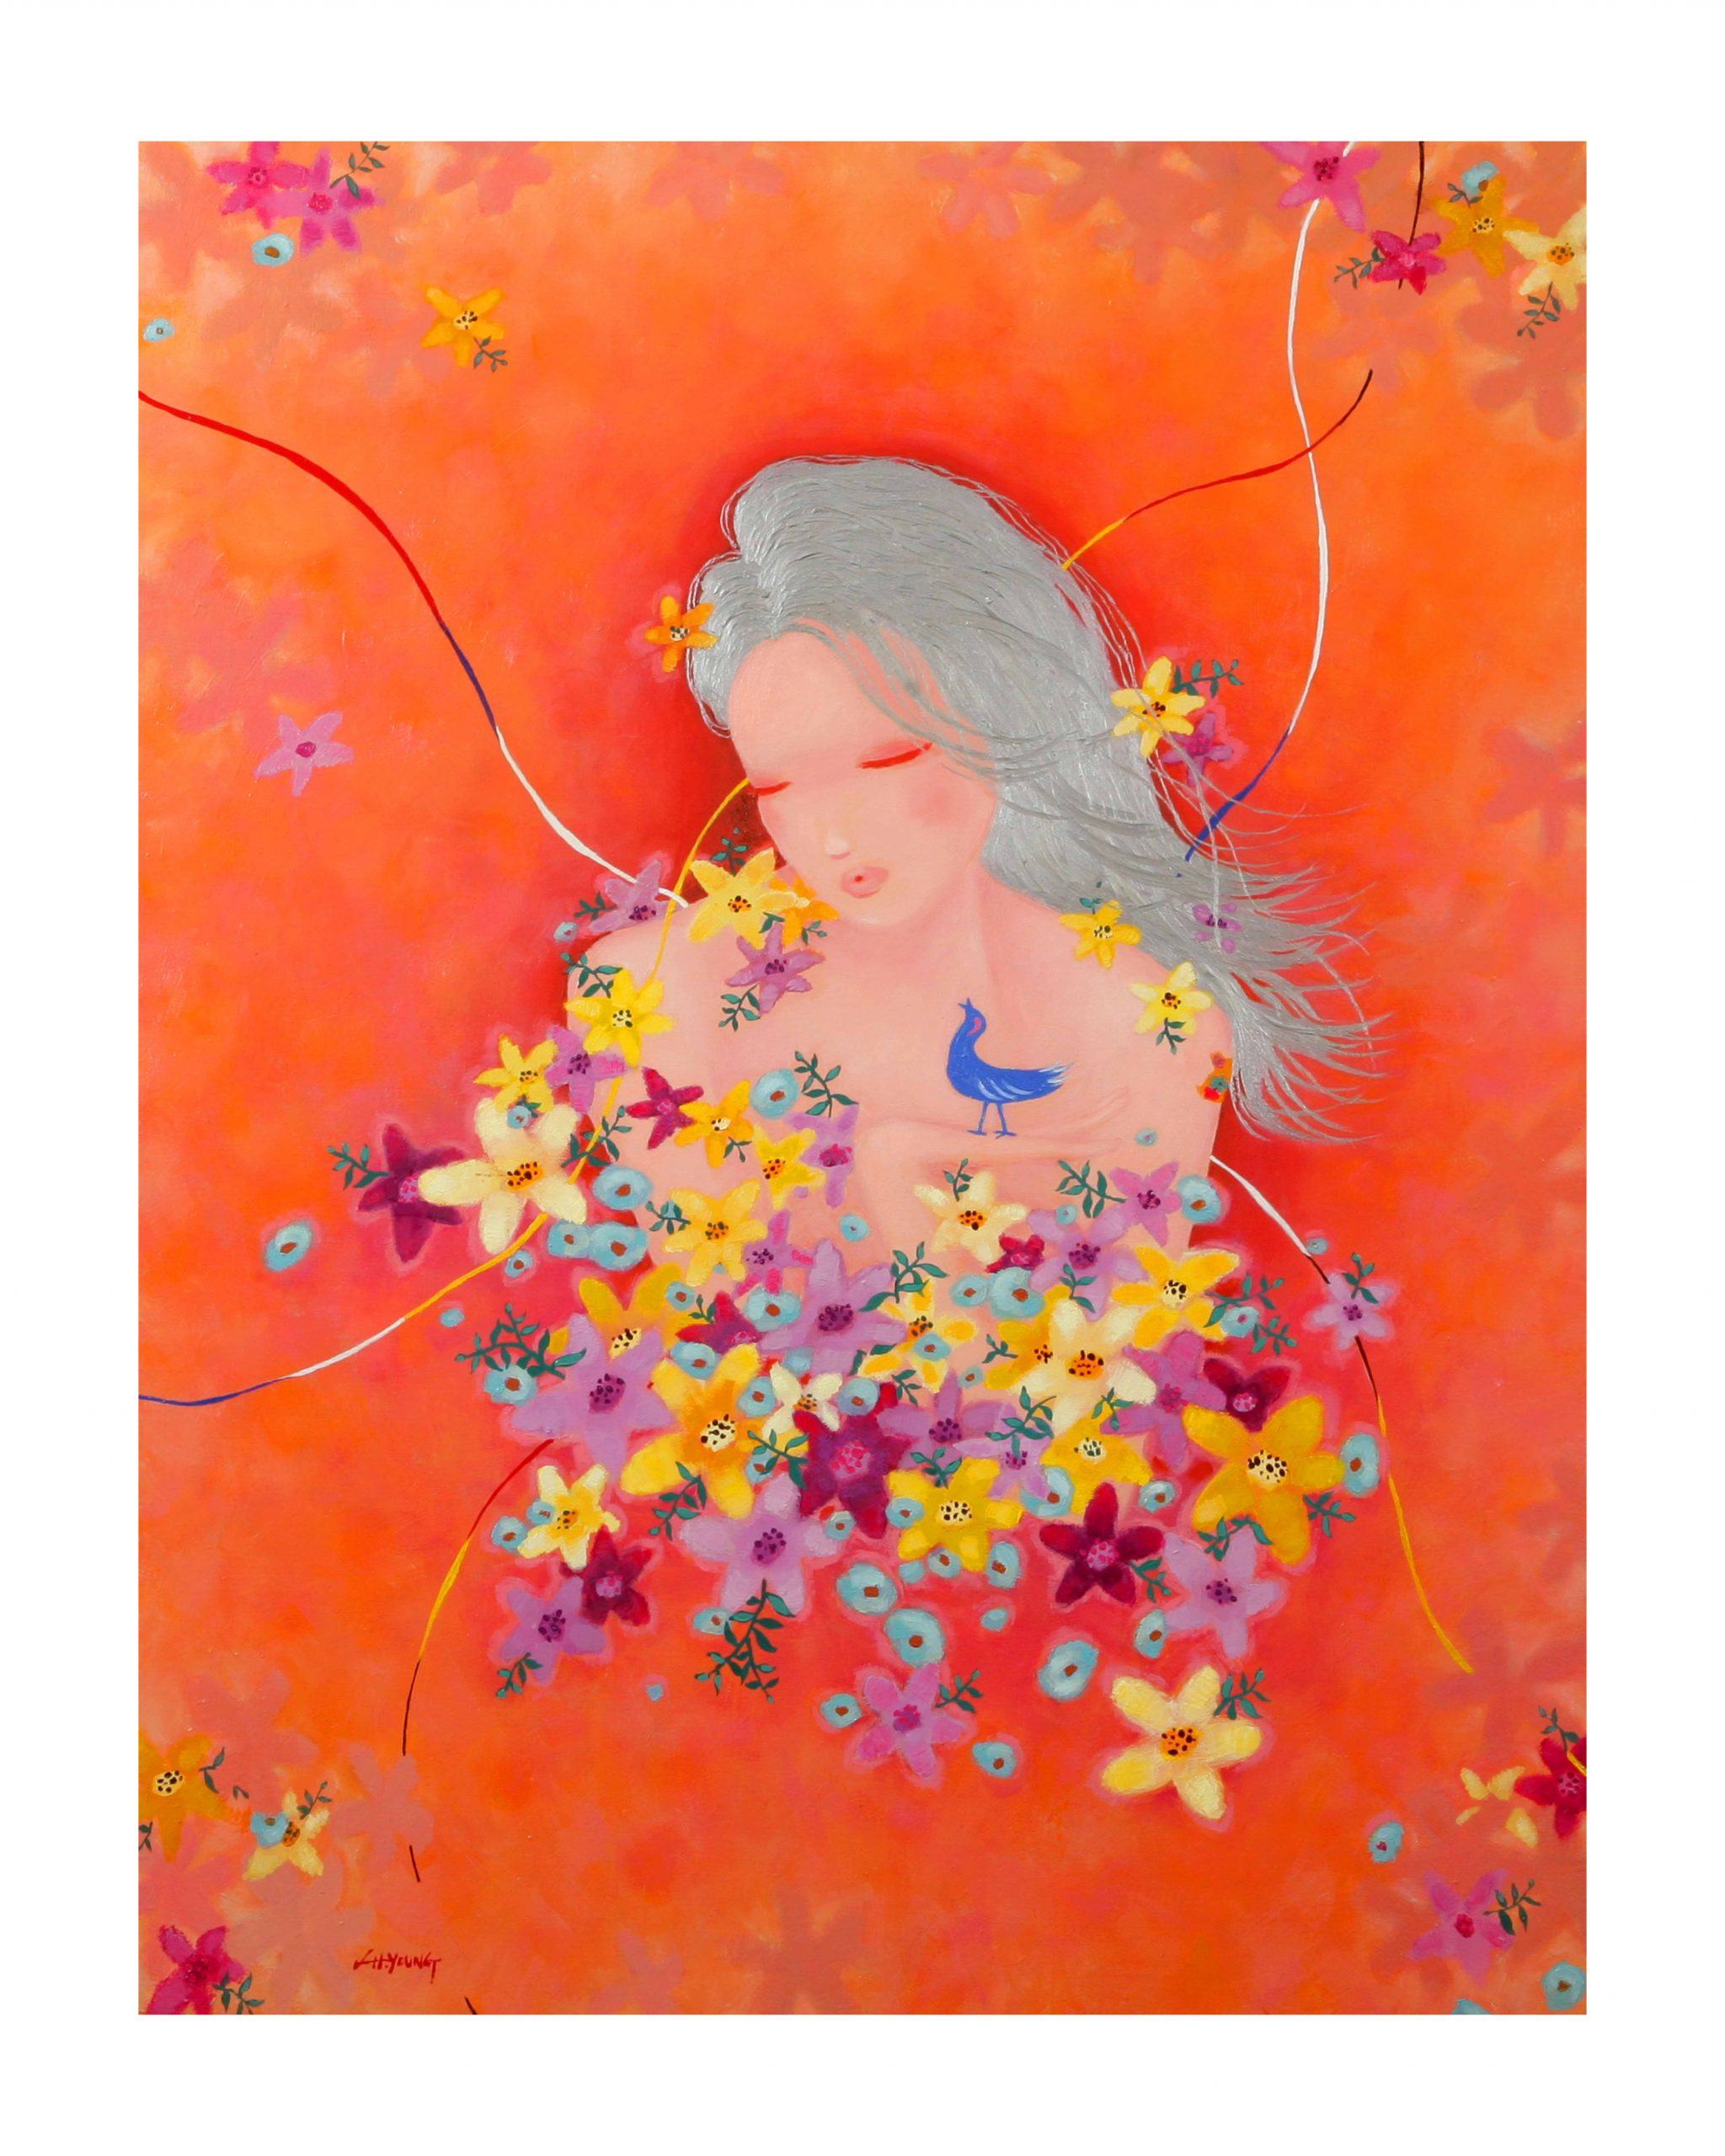 Hye Yeong Lim 07 임혜영116.8X91cm제목-Flora-3 재료-Oil on Canvas 2021 copy